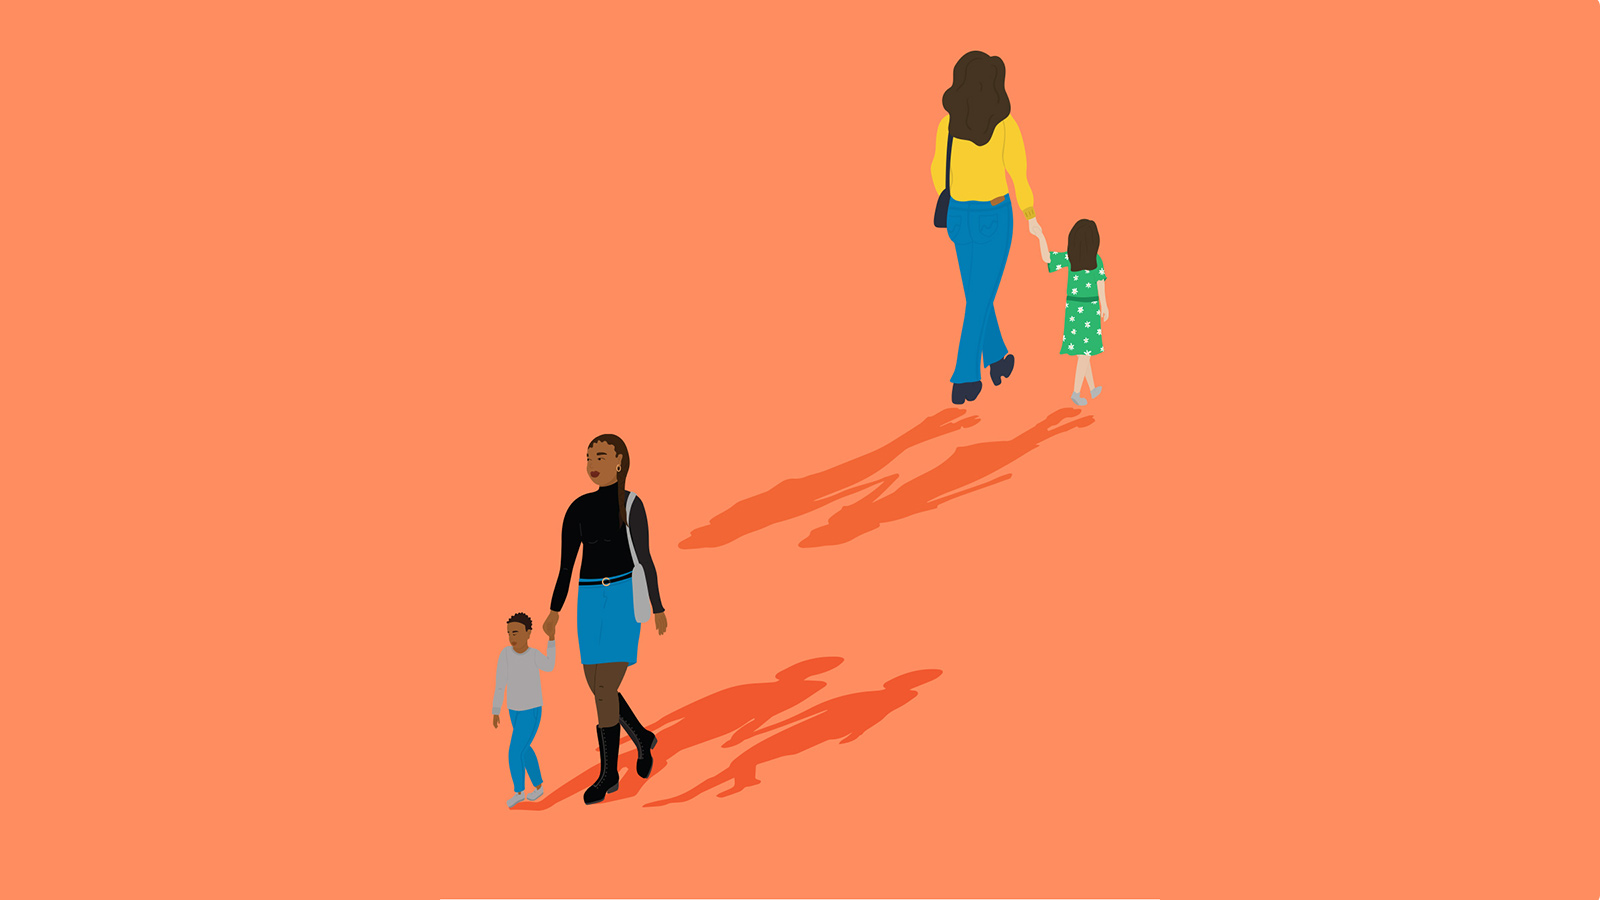 Two sets of mothers and their children on an orange background.